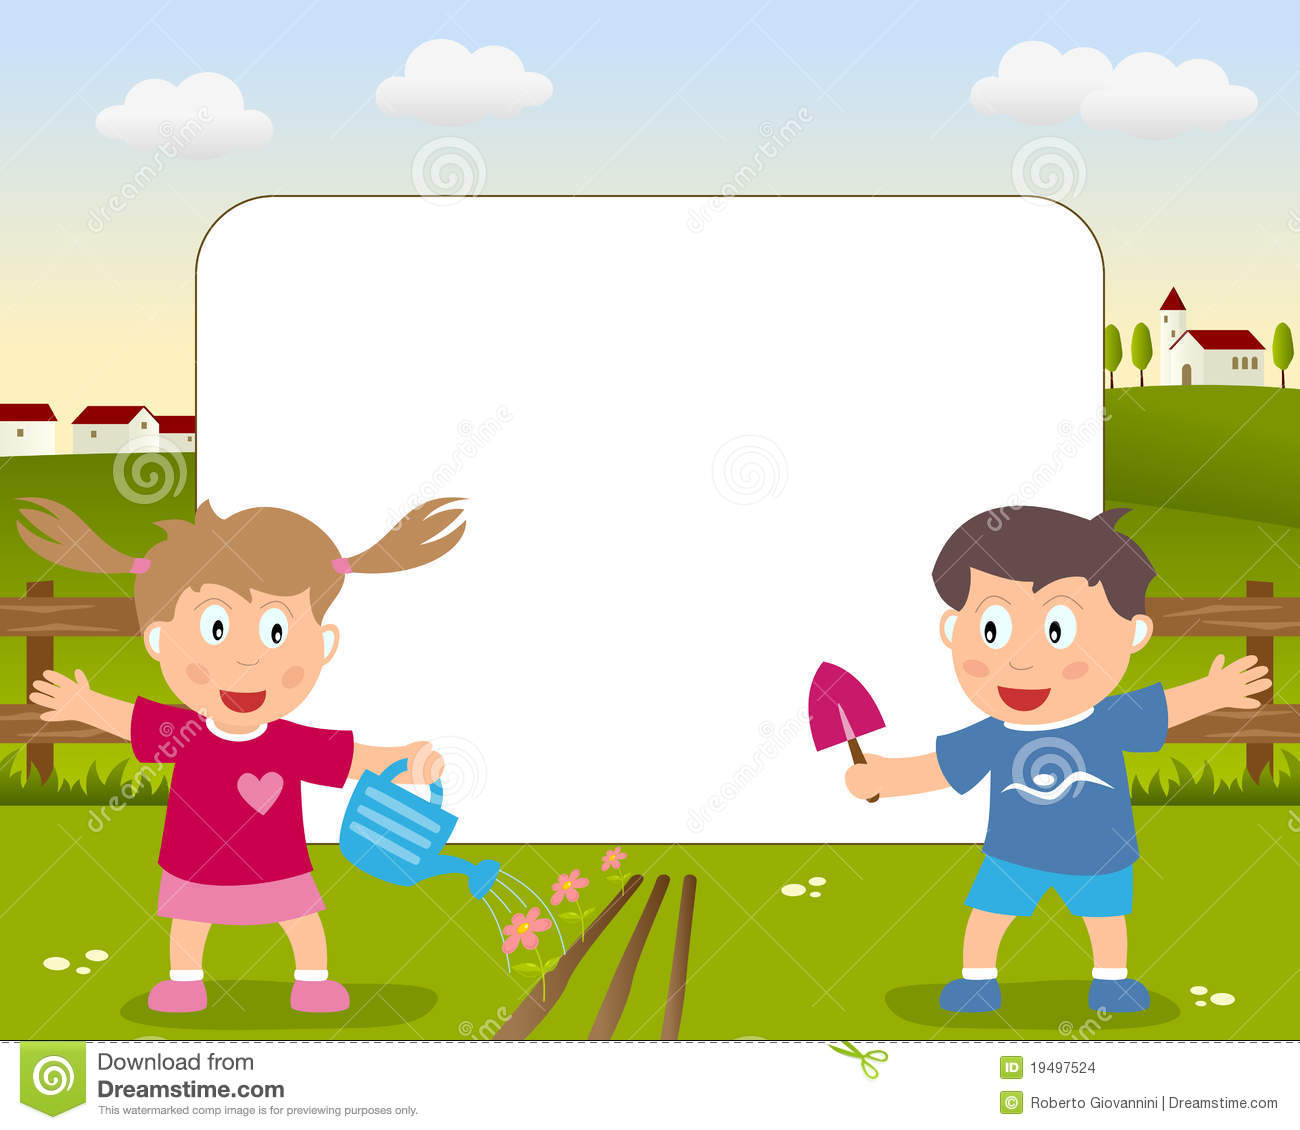 funny cartoon photo frame with a girl and a boy playing with